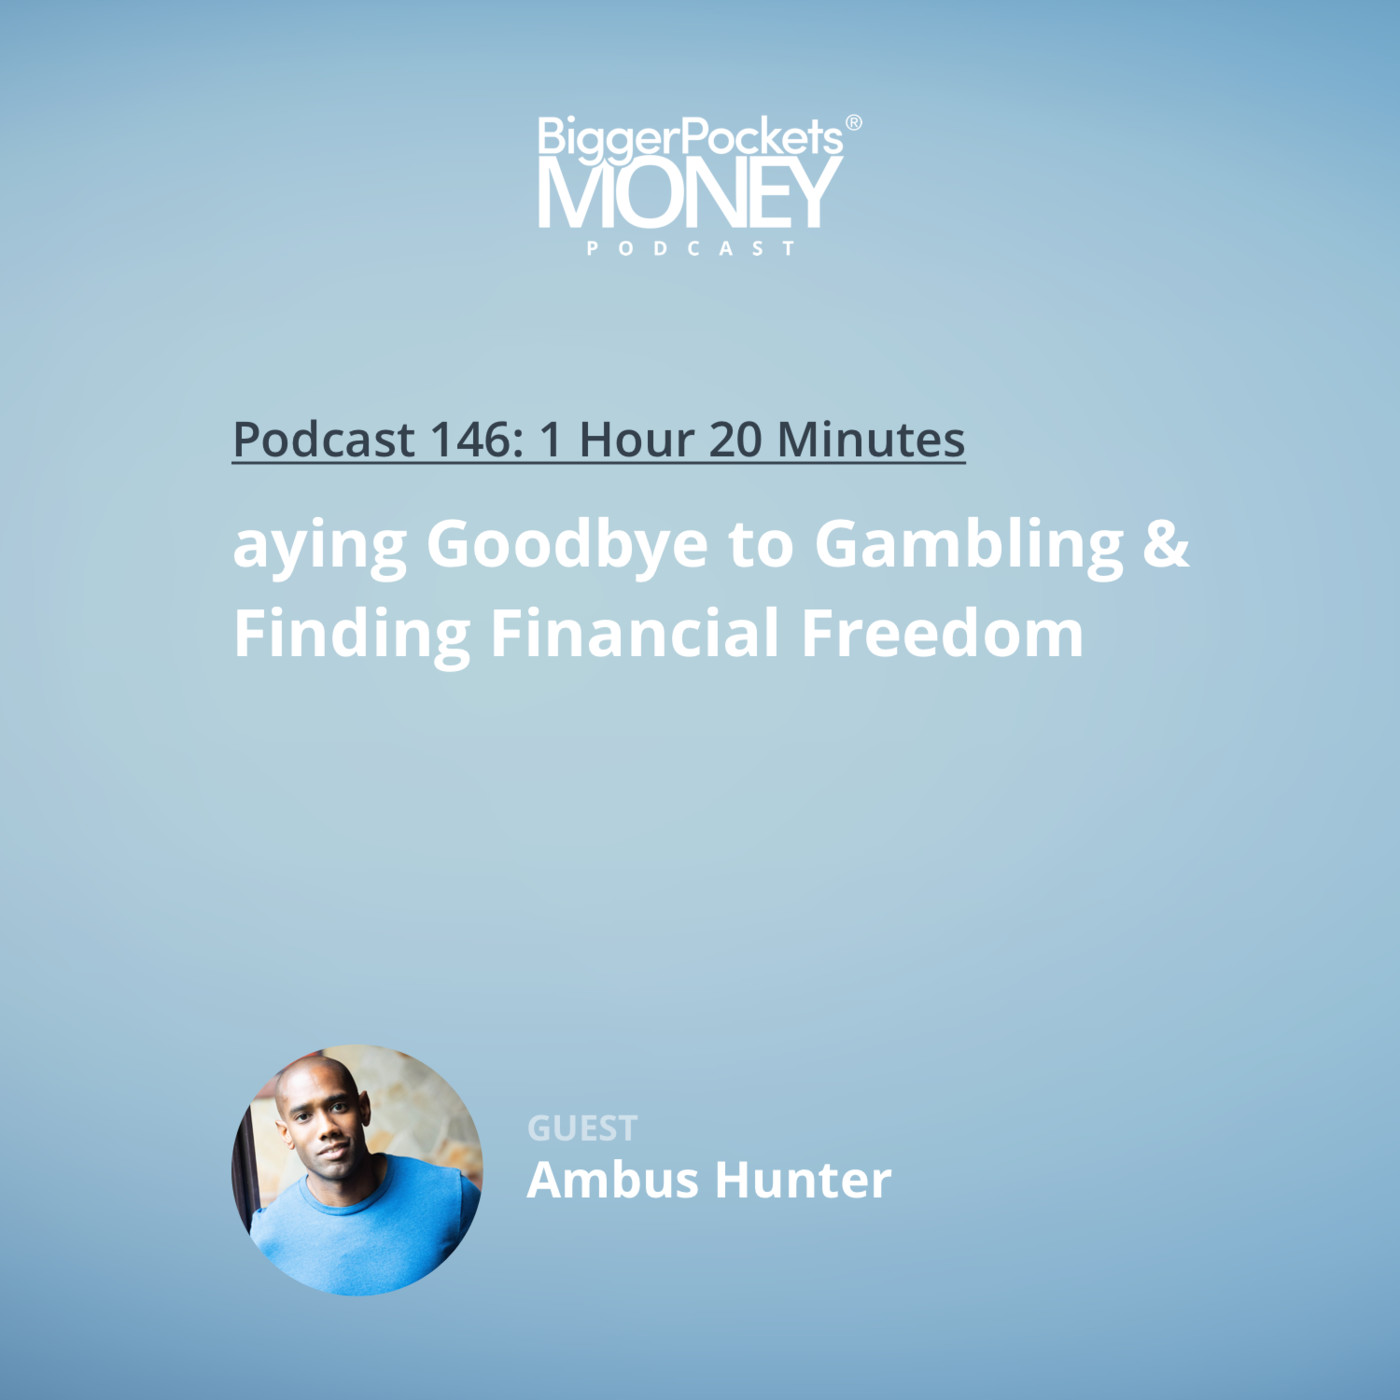 146: Saying Goodbye to Gambling & Finding Financial Freedom with Ambus Hunter